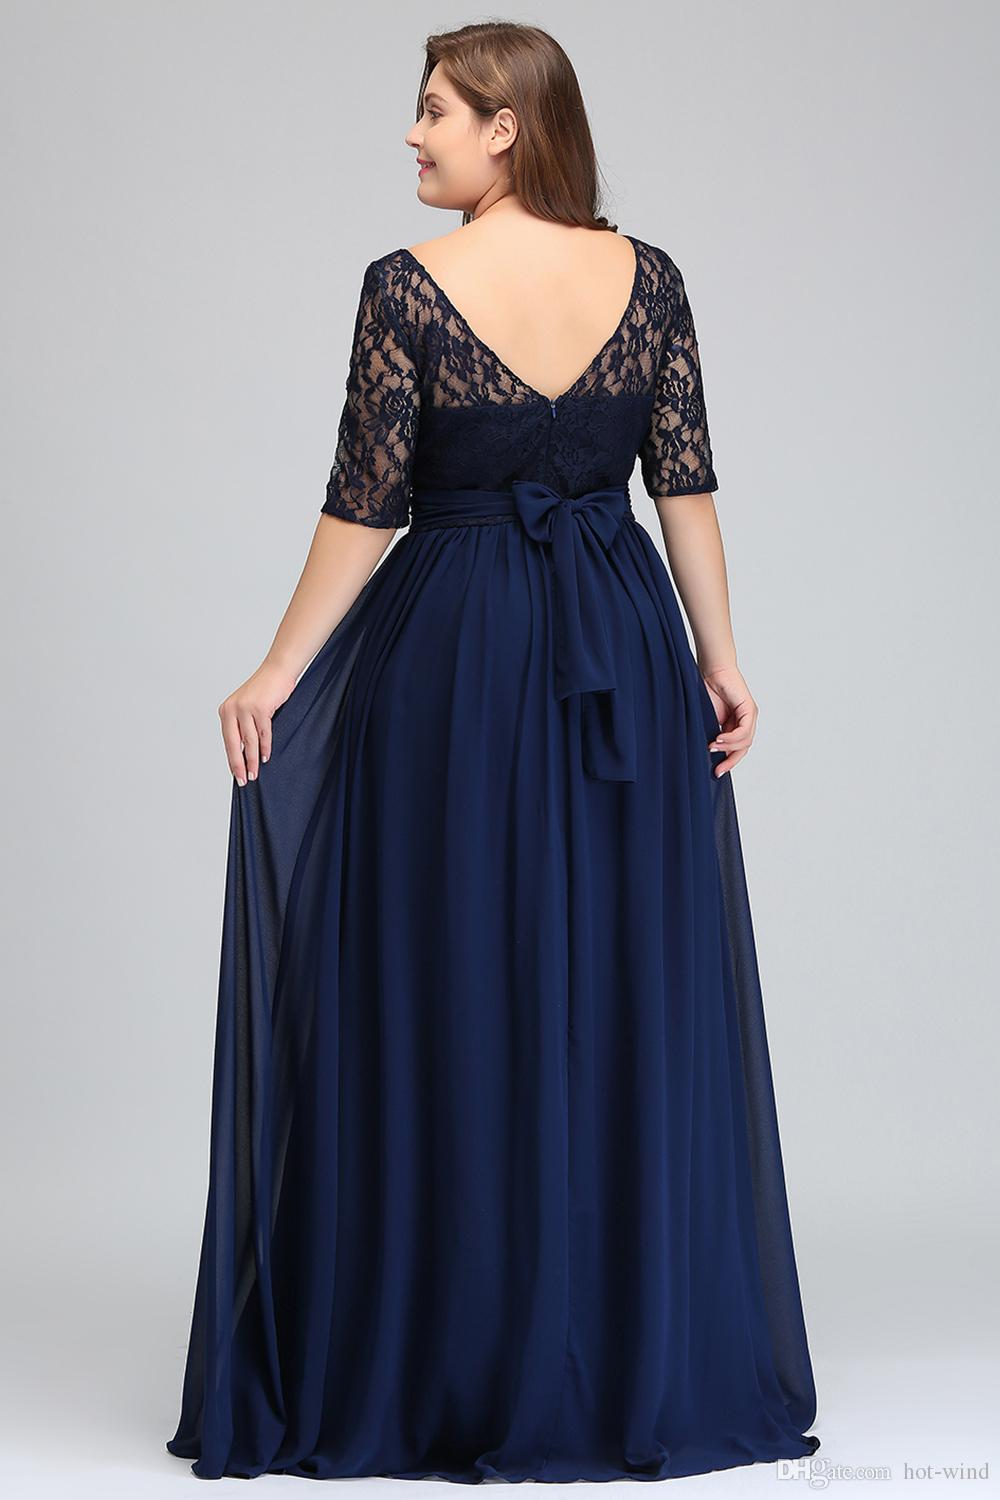 Dark Navy Black Burgundy Half Long Sleeves Plus Size Prom Dresses Lace Top A Line Chiffon V Back Mother of Bride Dresses Cheap Gowns CPS522